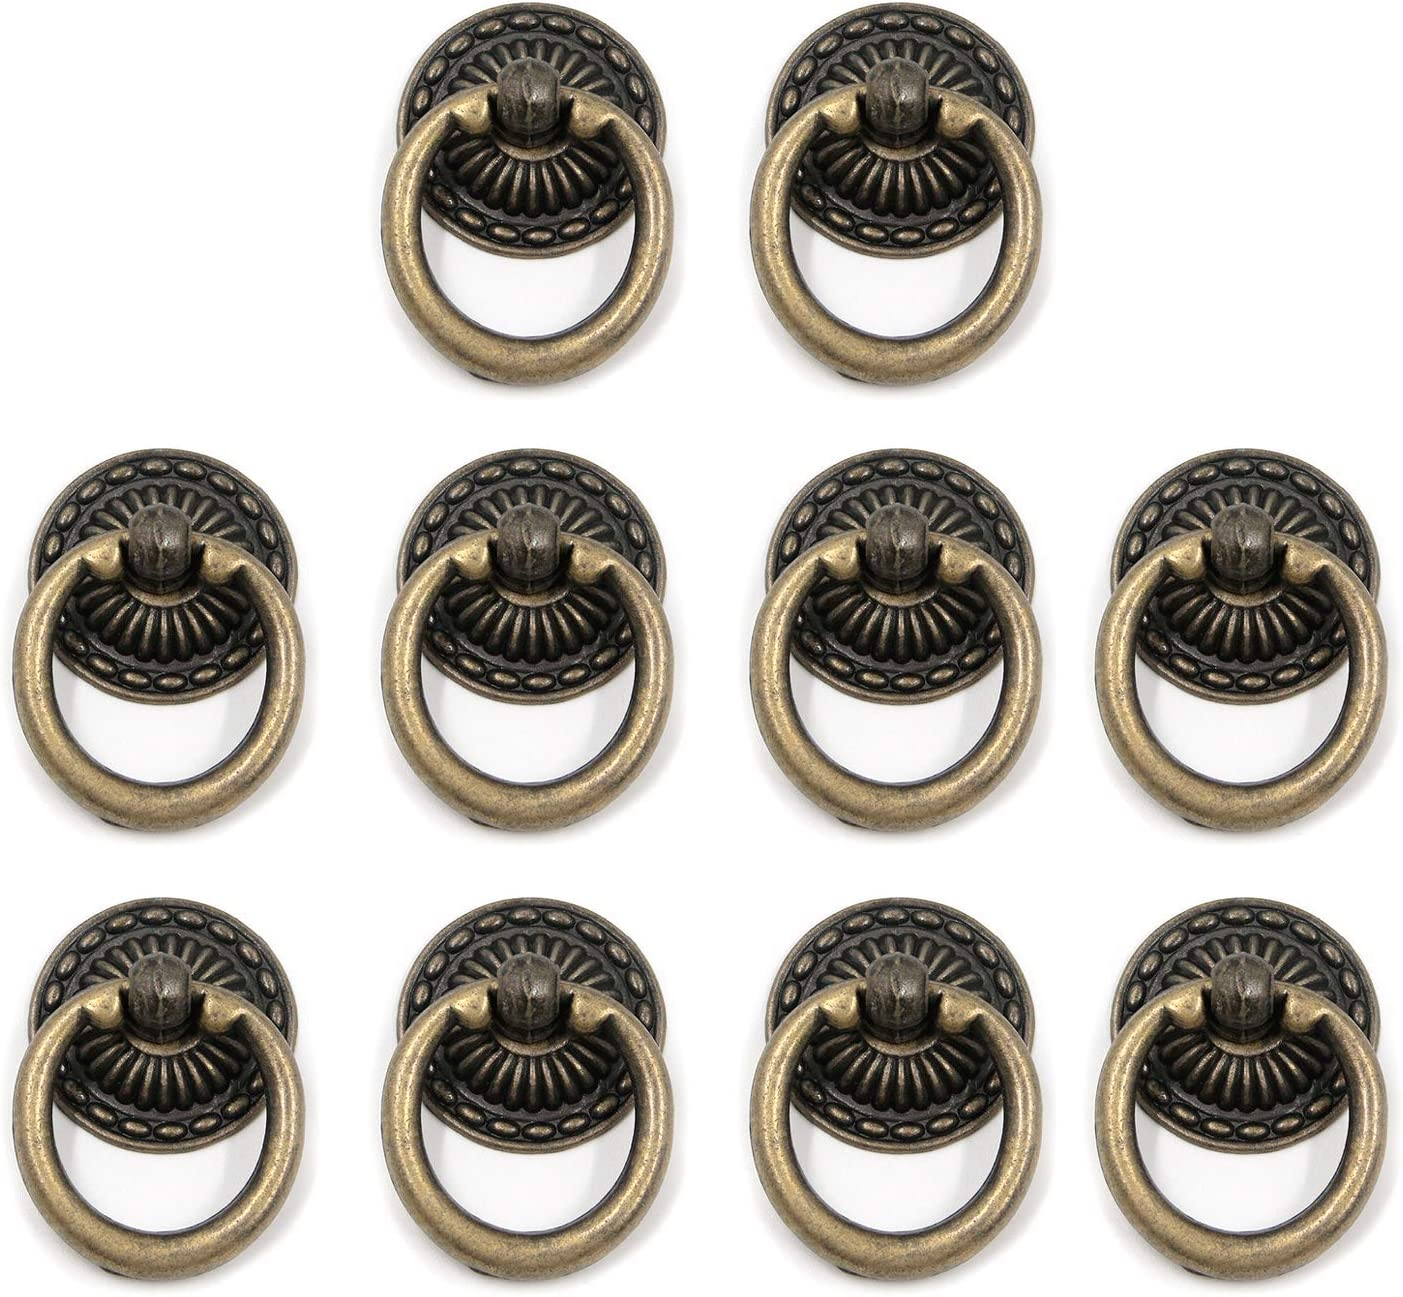 MTMTOOL Antique Bronze Knobs Pulls Handles Hardware Furniture Drawer Pull Ring Dresser Cabinet Ring Pulls with Screws Pack of 10